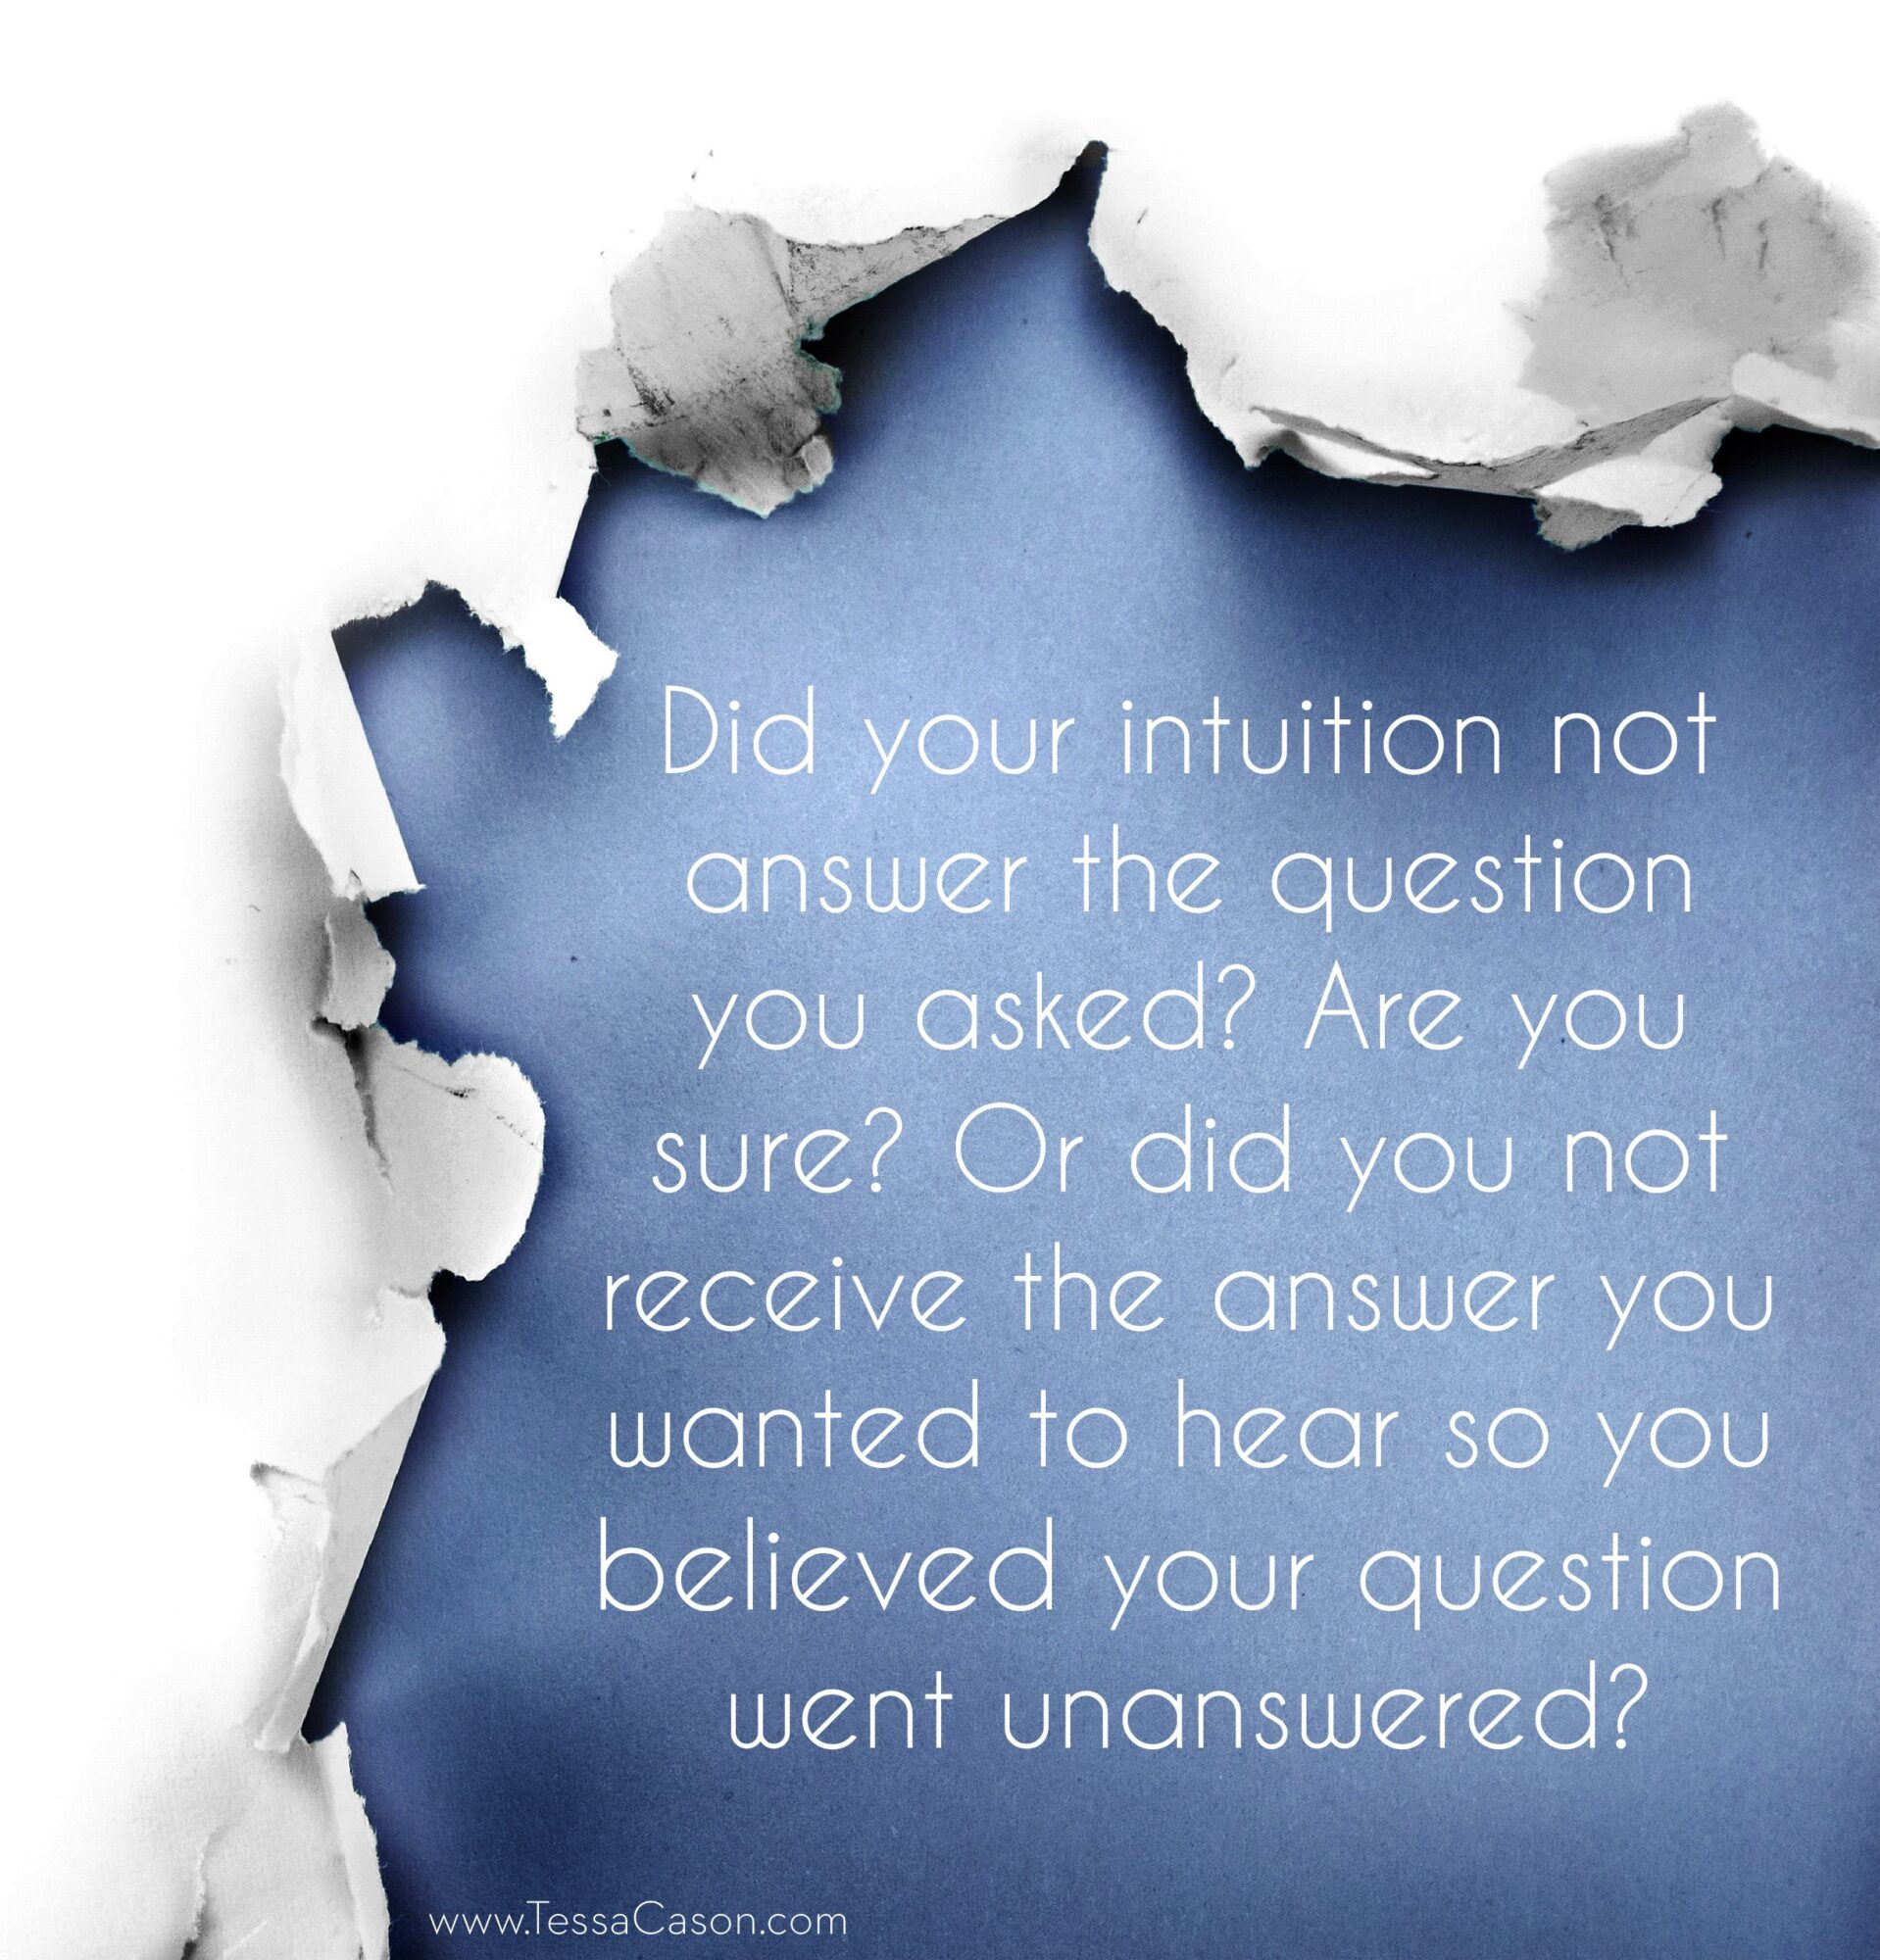 Did your intuition not answer the question you asked